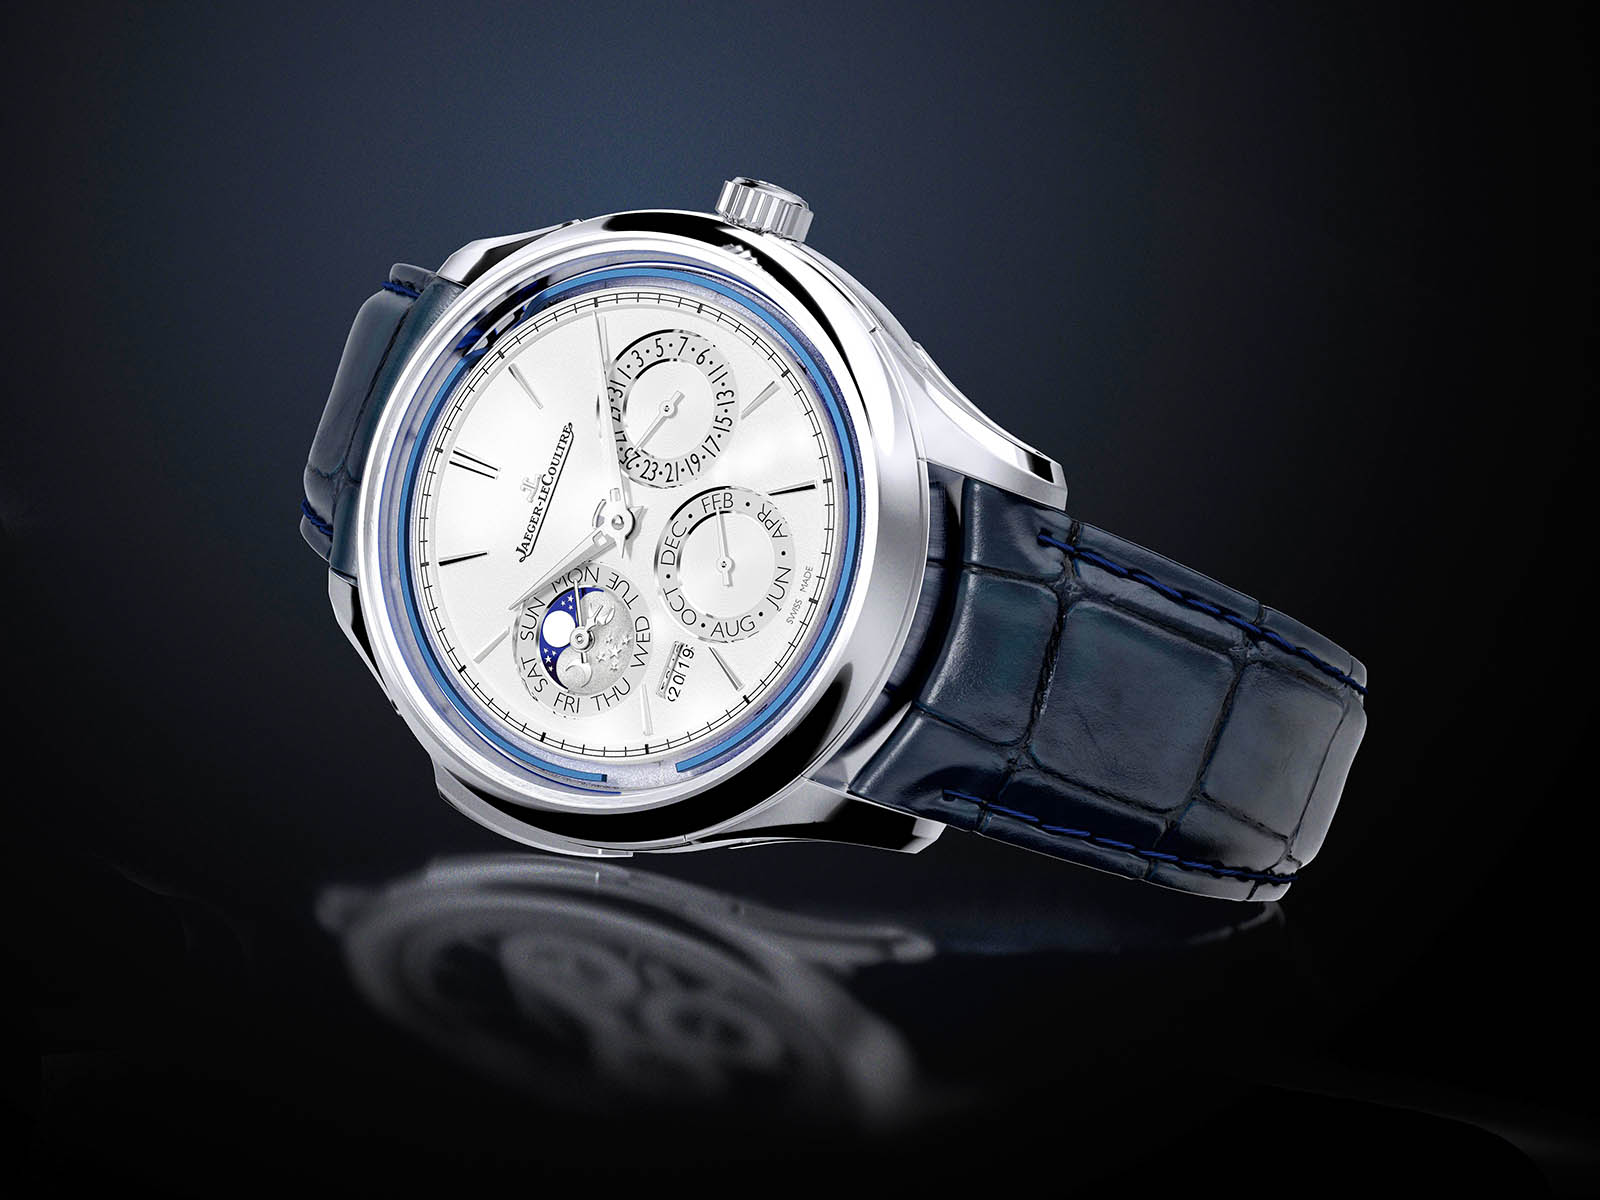 5233420-jaeger-lecoultre-master-grande-tradition-repetition-minute-perpetuelle-1.jpg